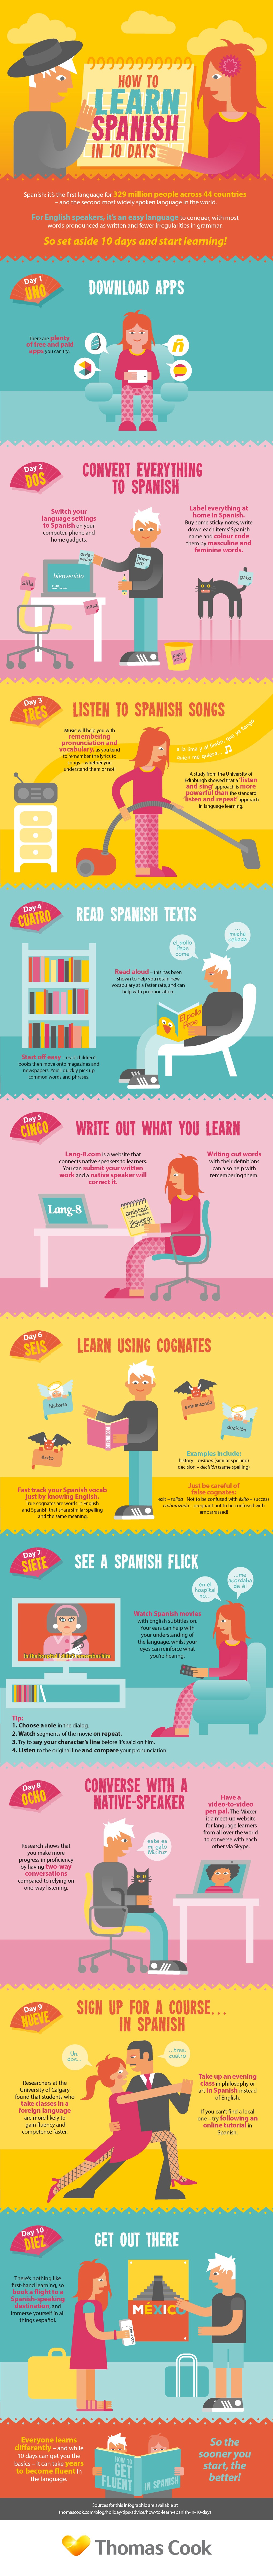 learn-spanish-in-10-days-infographic